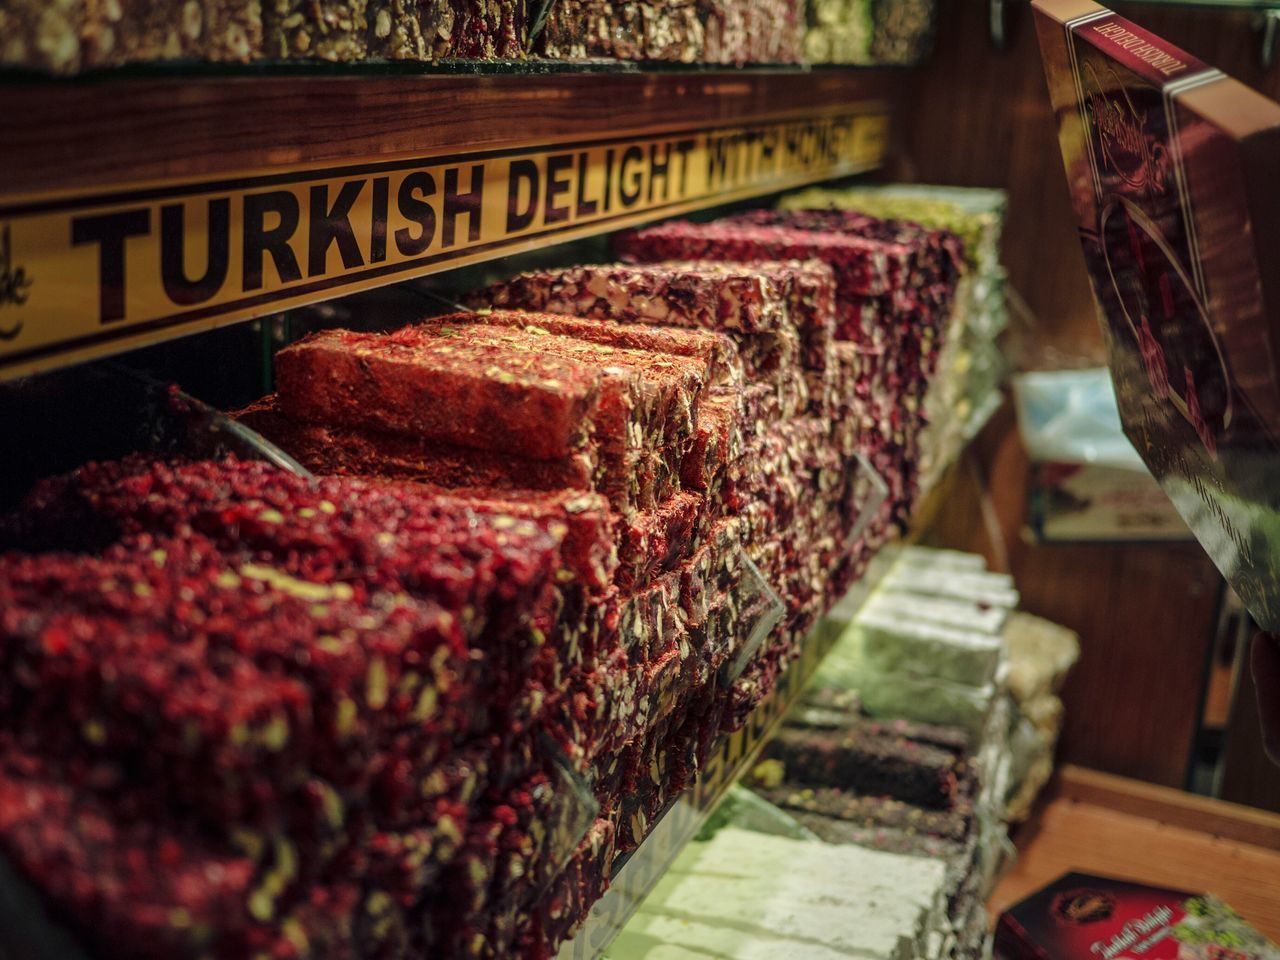 Turkish Delights Food And Drink Food For Sale Indoors  Retail  No People Store Freshness Close-up Day Turkey Turkish Turkish Delight Istanbul